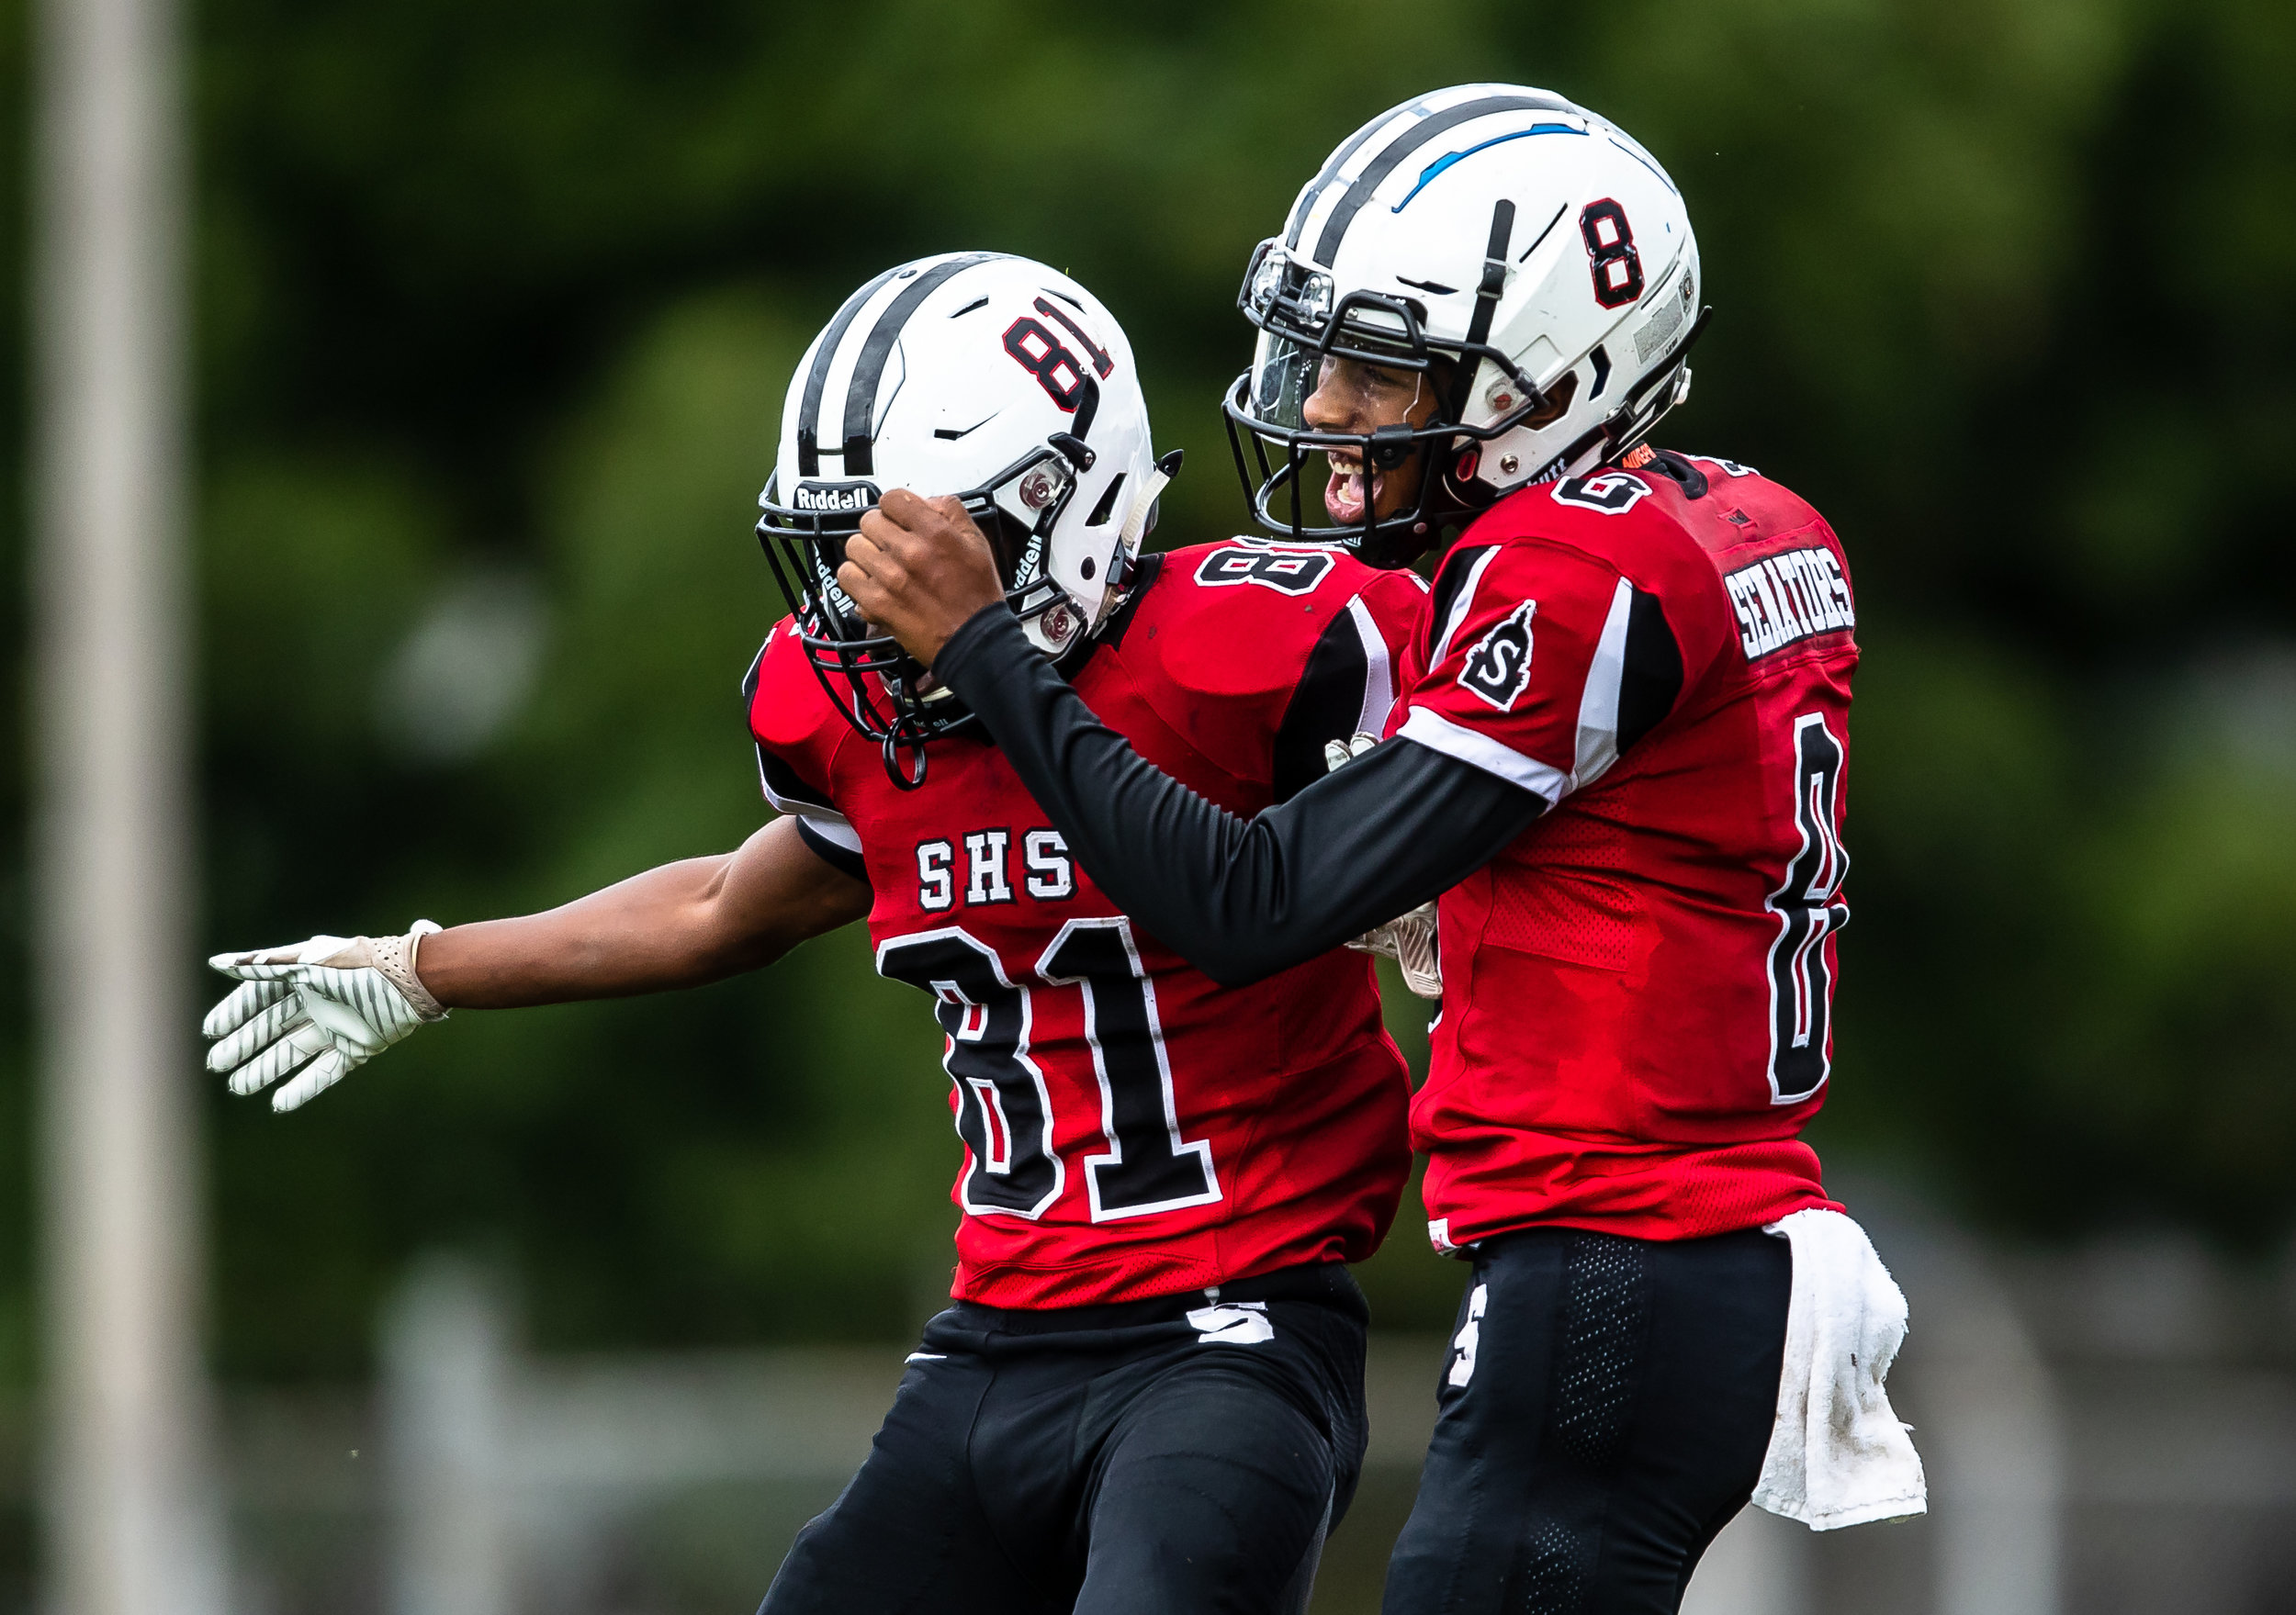 Springfield's John Waddy (81) celebrates his touchdown with Springfield quarterback Rashad Rochelle (8) against Rochester in the first half at Memorial Stadium, Saturday, Oct. 6, 2018, in Springfield, Ill. [Justin L. Fowler/The State Journal-Register]